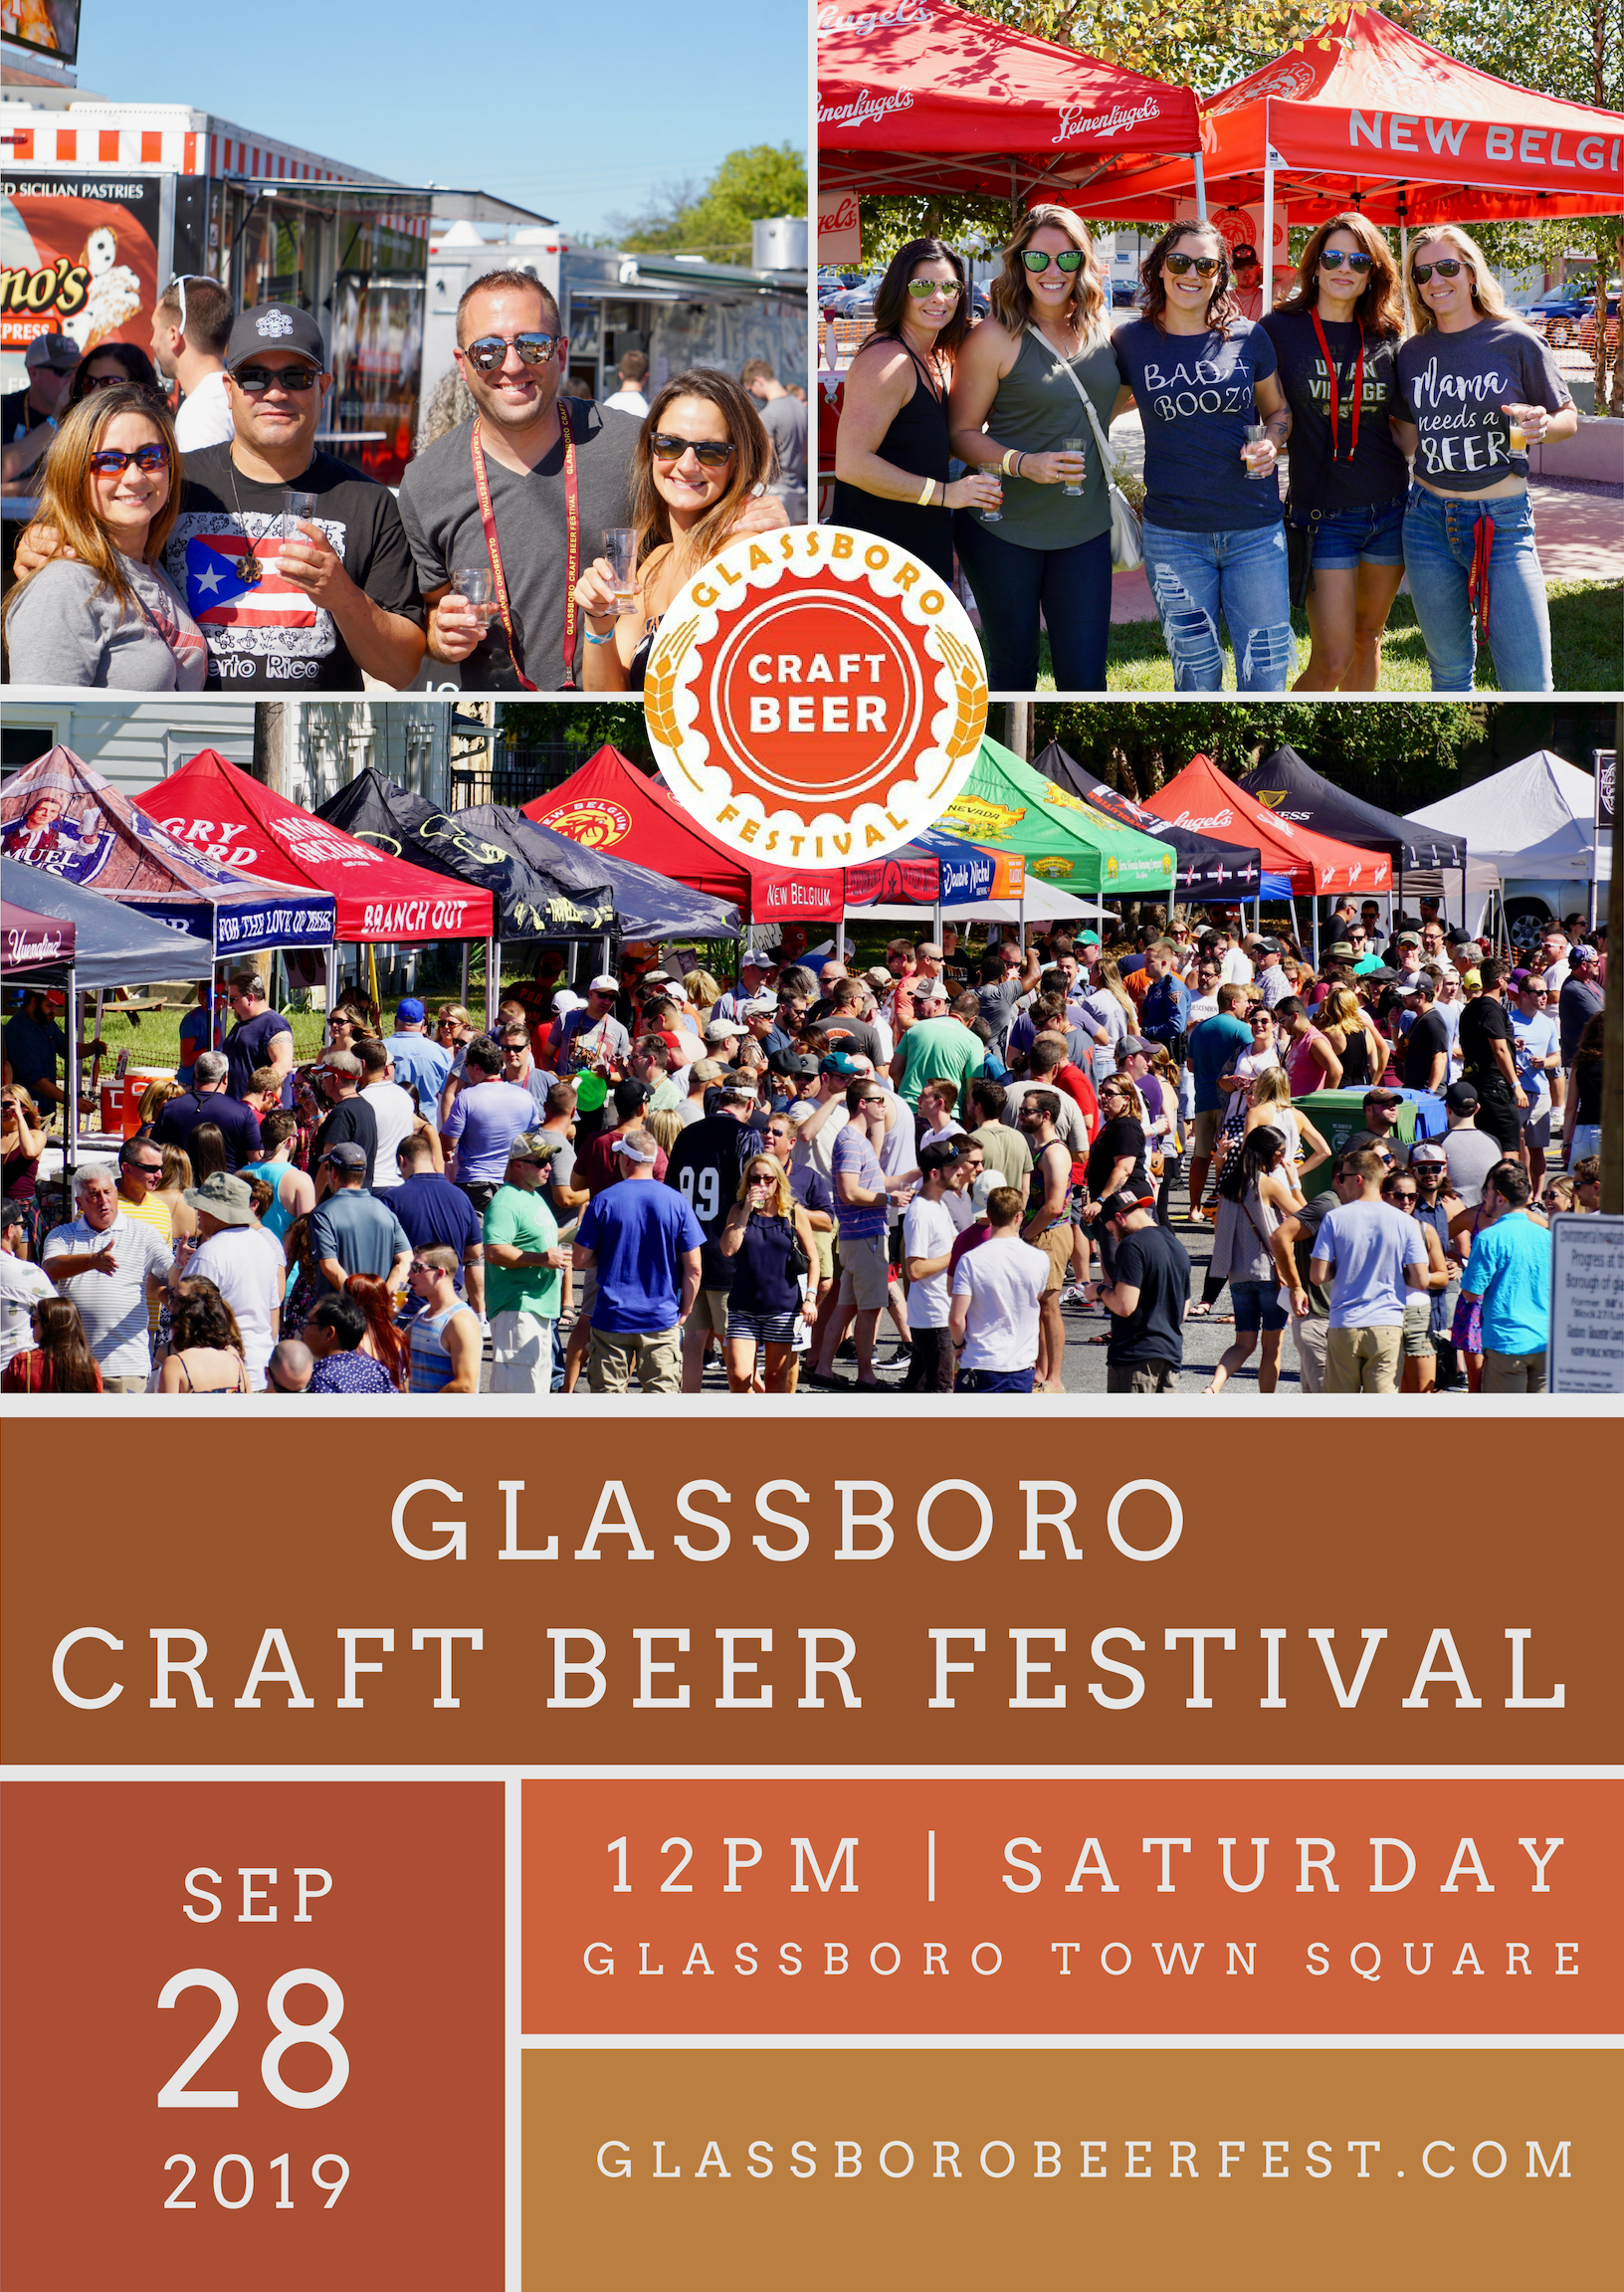 glassboro craft beer festival 2019.png